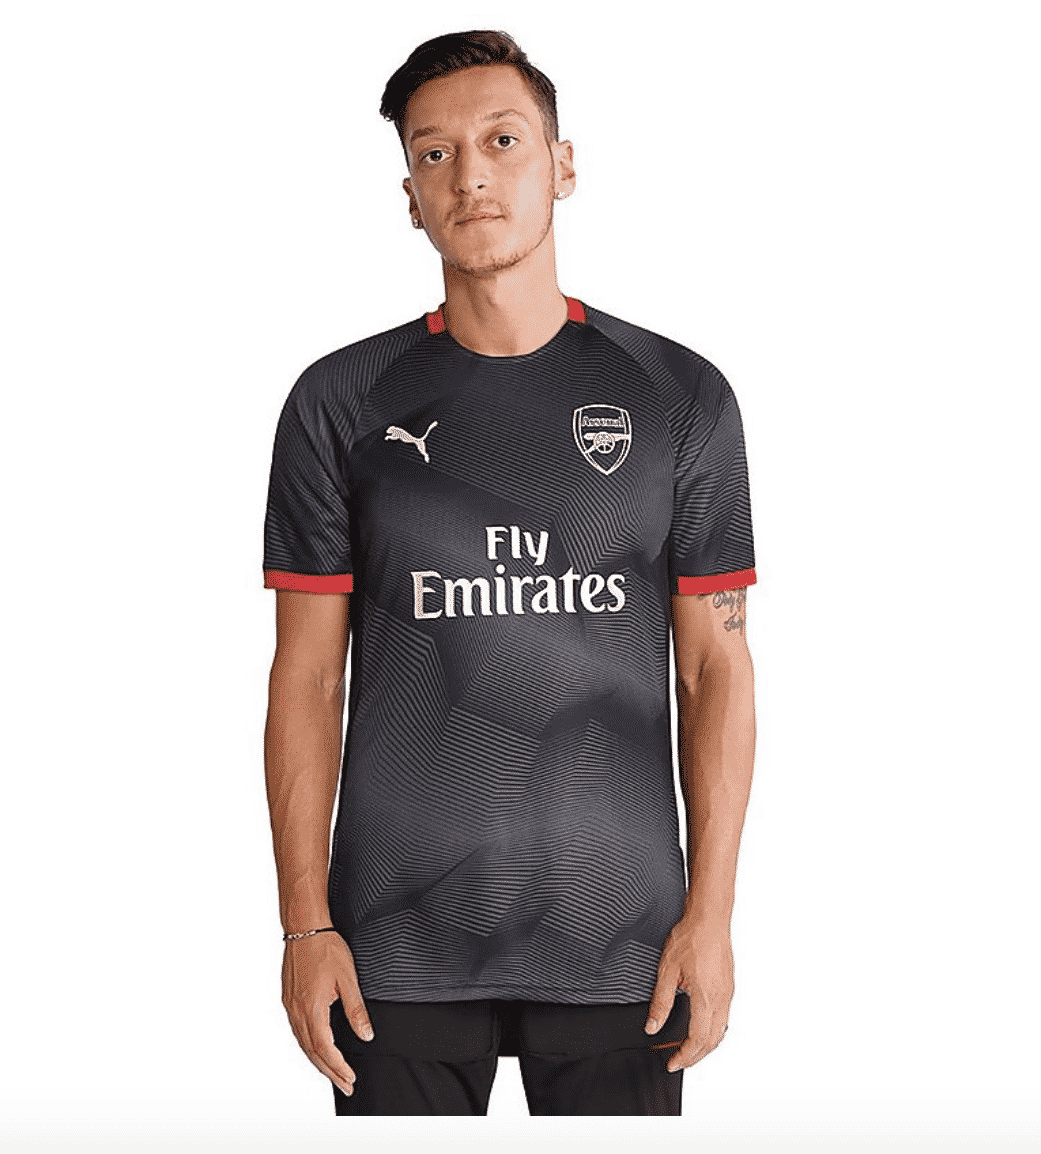 tee-shirt-stadium-shirt-arsenal-training-pre-match-2019-puma-ozil